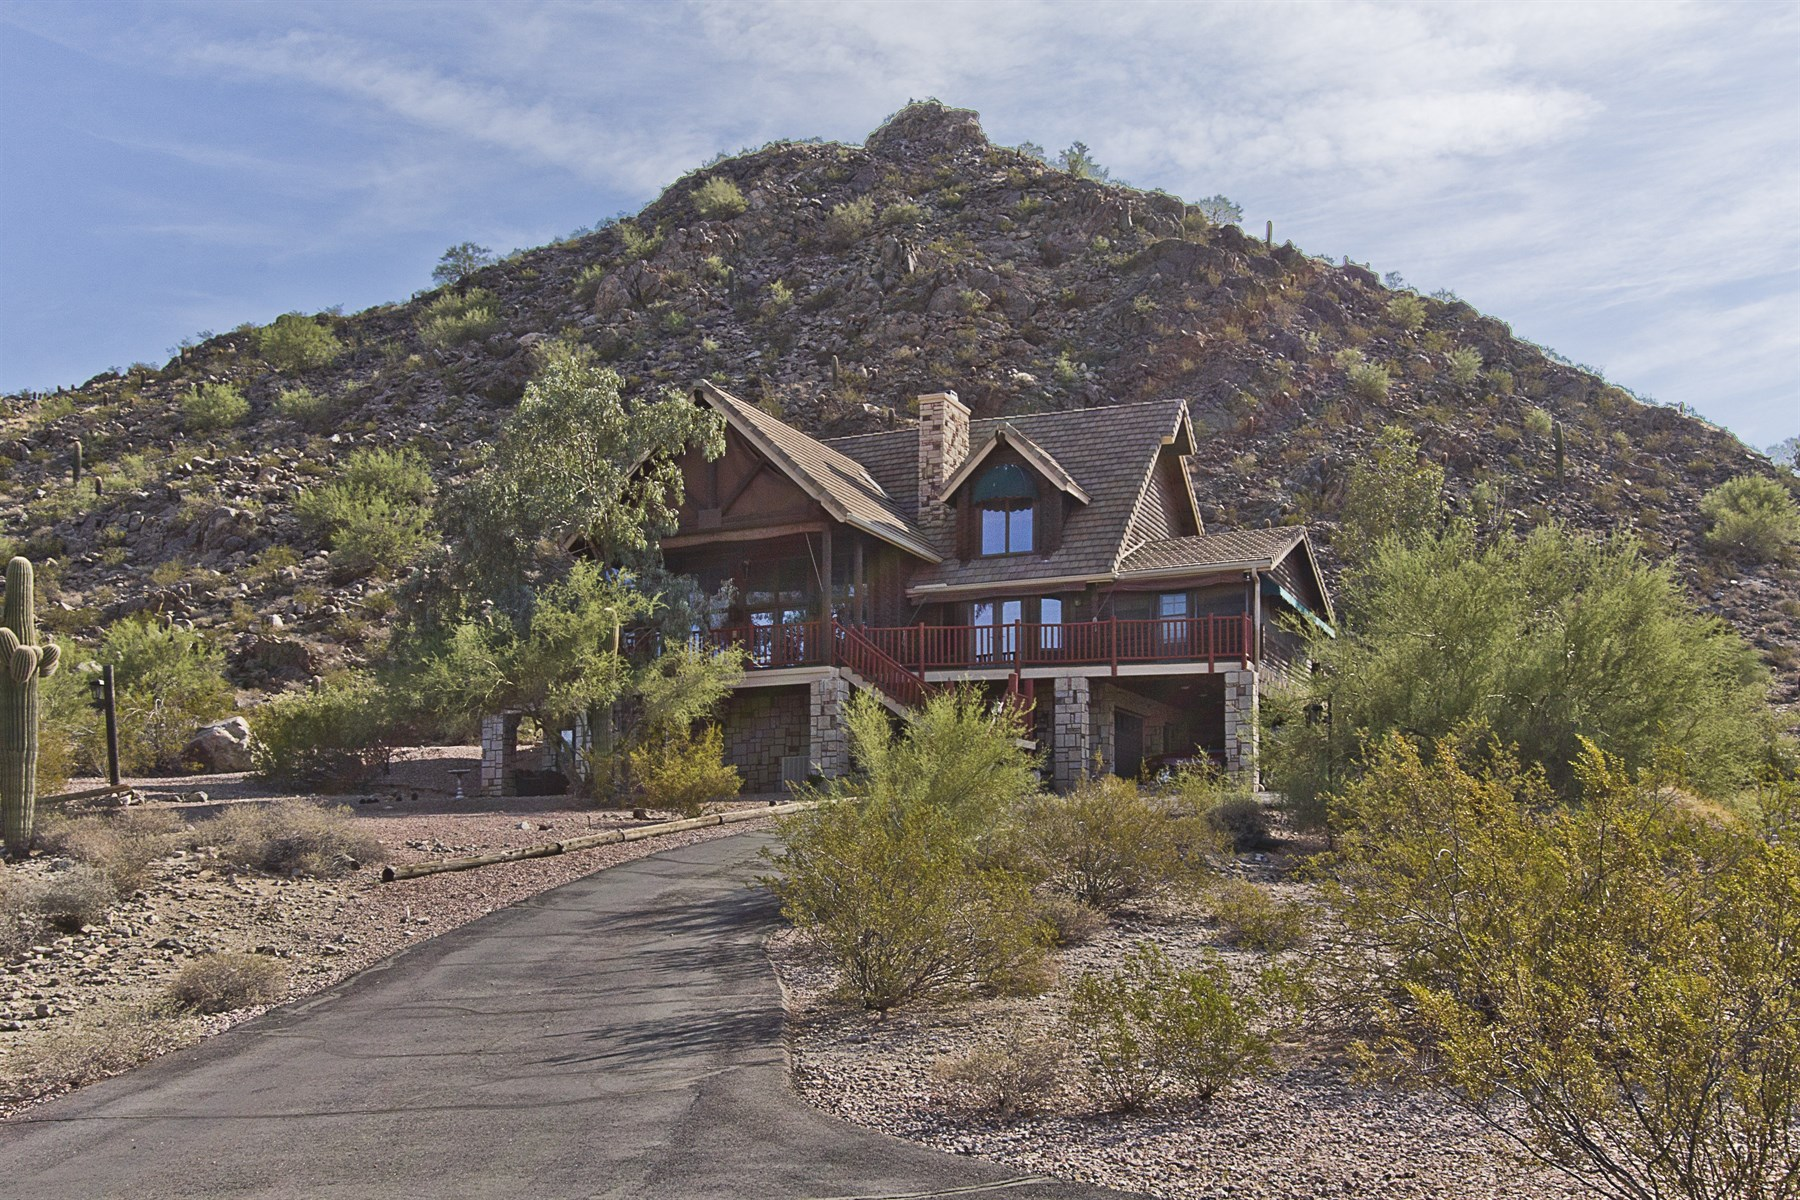 Single Family Home for Sale at Stunning log home estate on 10 acres nestled into the beautiful Santan Mountains 31545 N Pamela Dr Queen Creek, Arizona 85142 United States